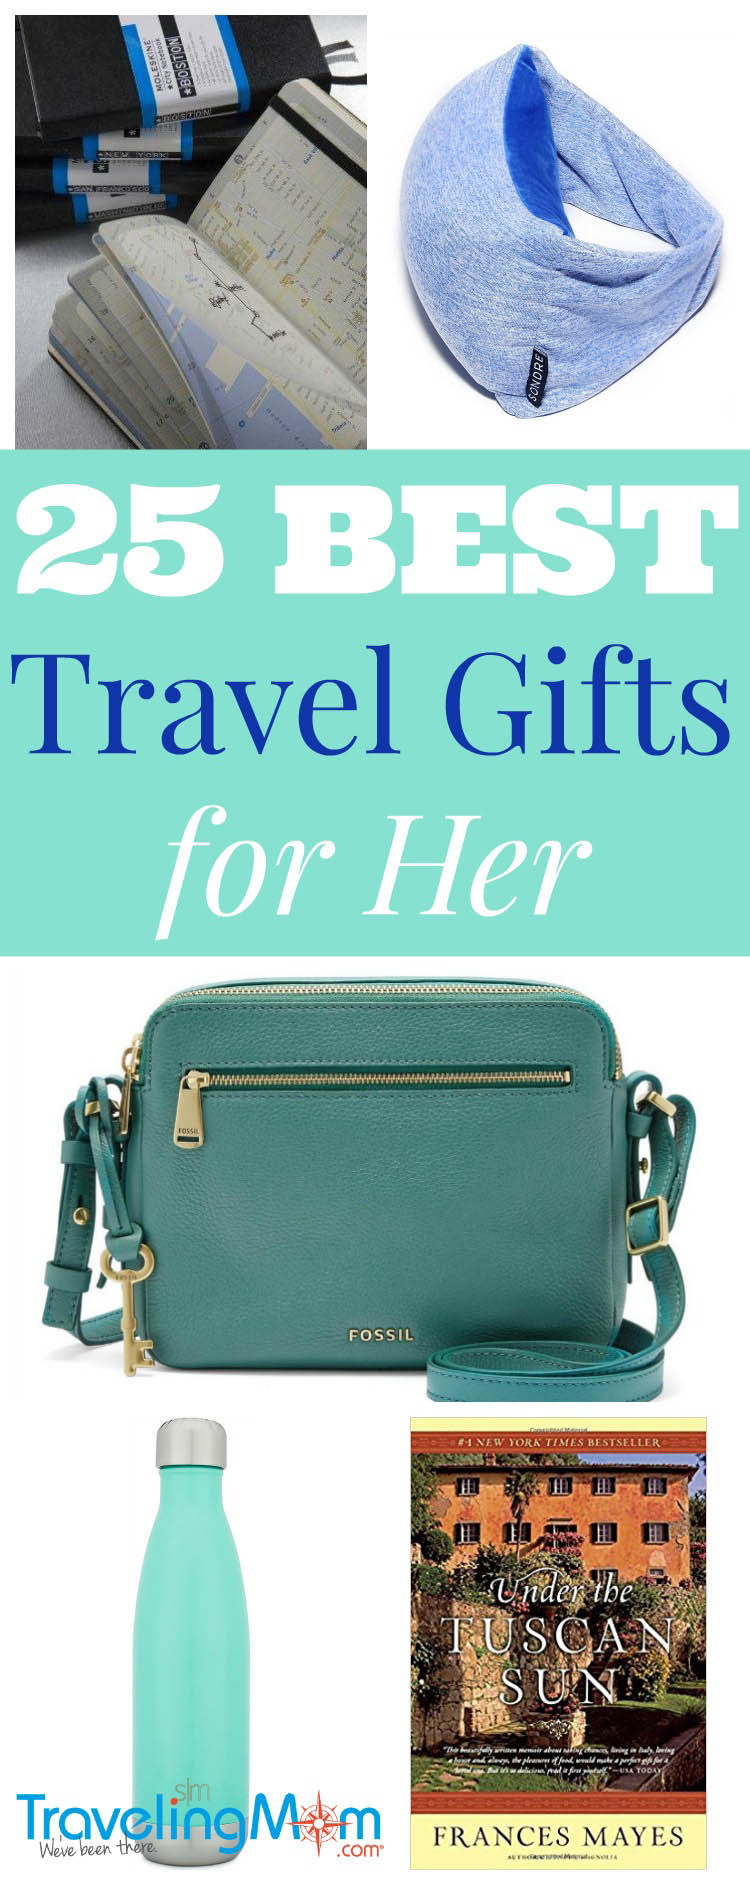 Best Travel Gifts for Women | Gift Guide | TravelingMom